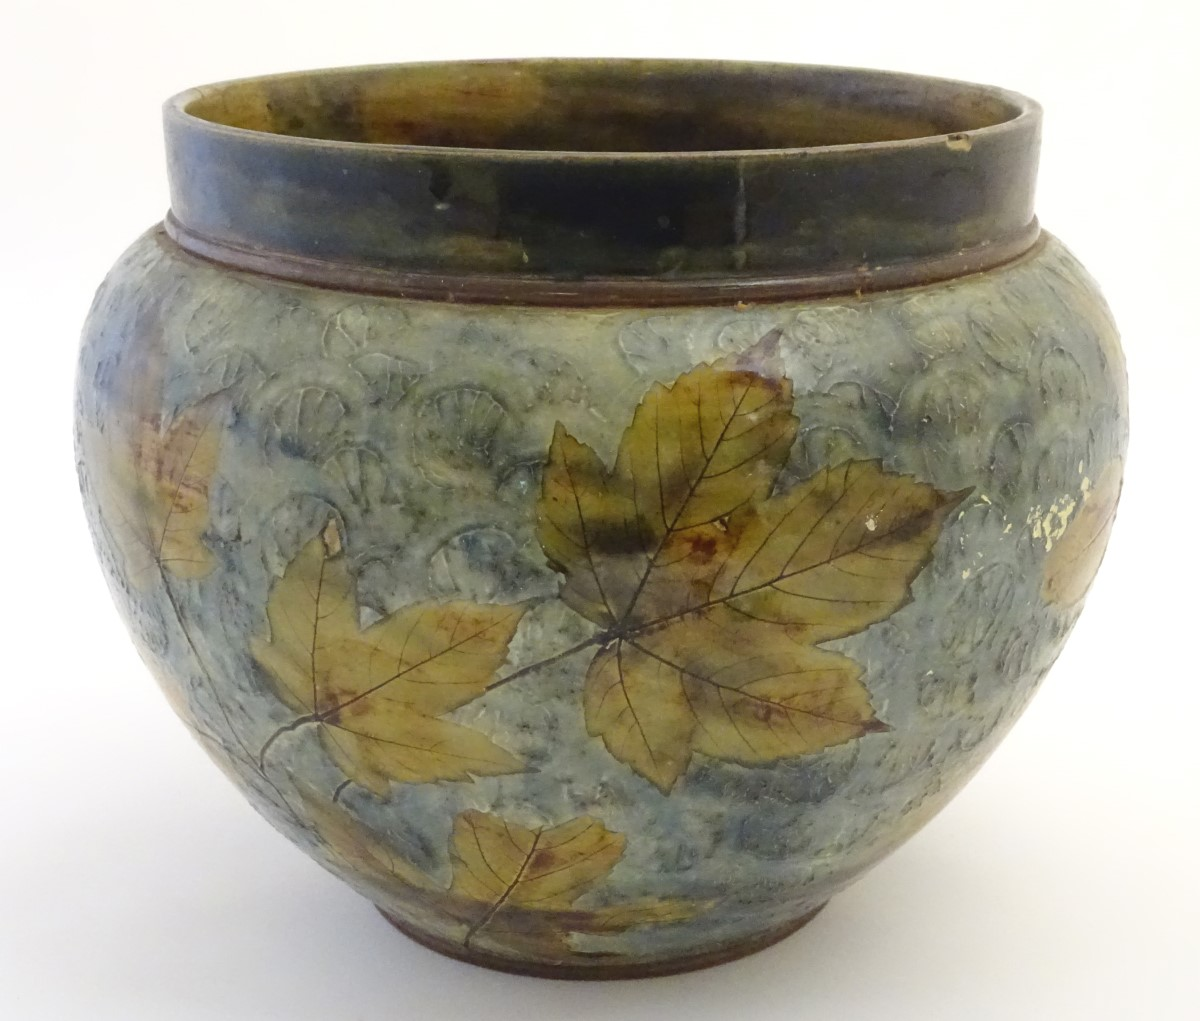 Lot 53 - A Royal Doulton stoneware jardiniere / planter of bulbous form, designed by Maud Bowden,